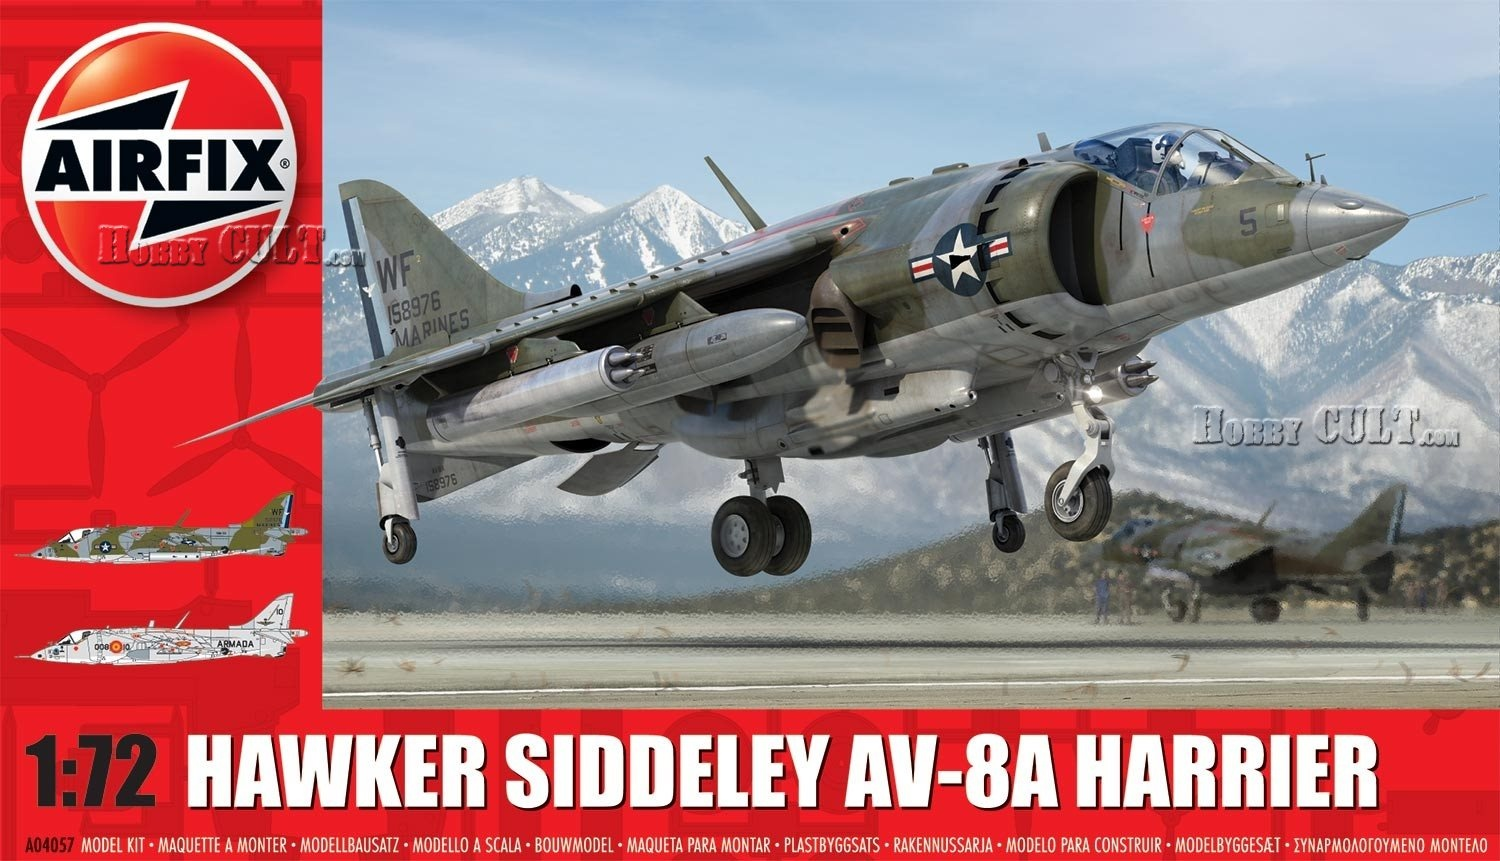 1:72 Hawker Siddeley Harrier AV-8A